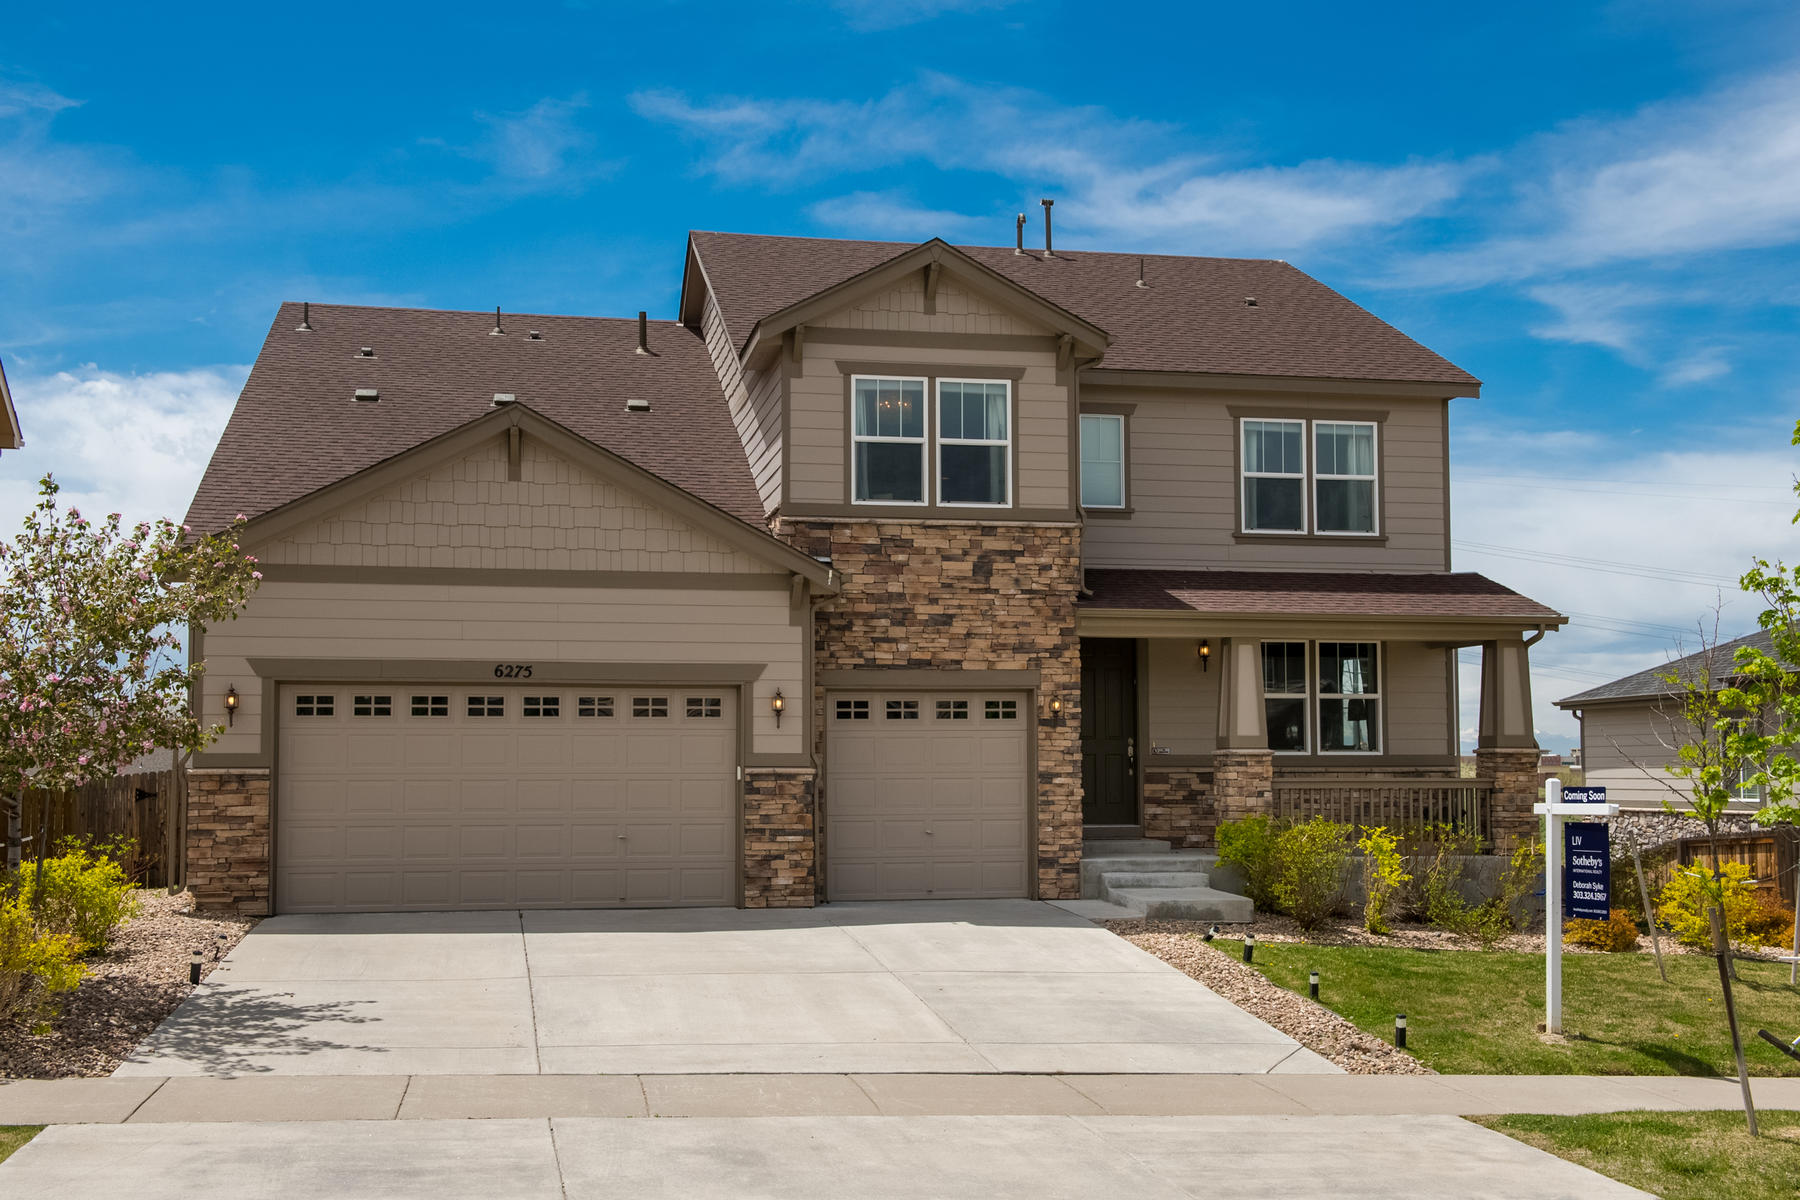 Property for Active at 6275 South Ider Way 6275 South Ider Way Aurora, Colorado 80016 United States